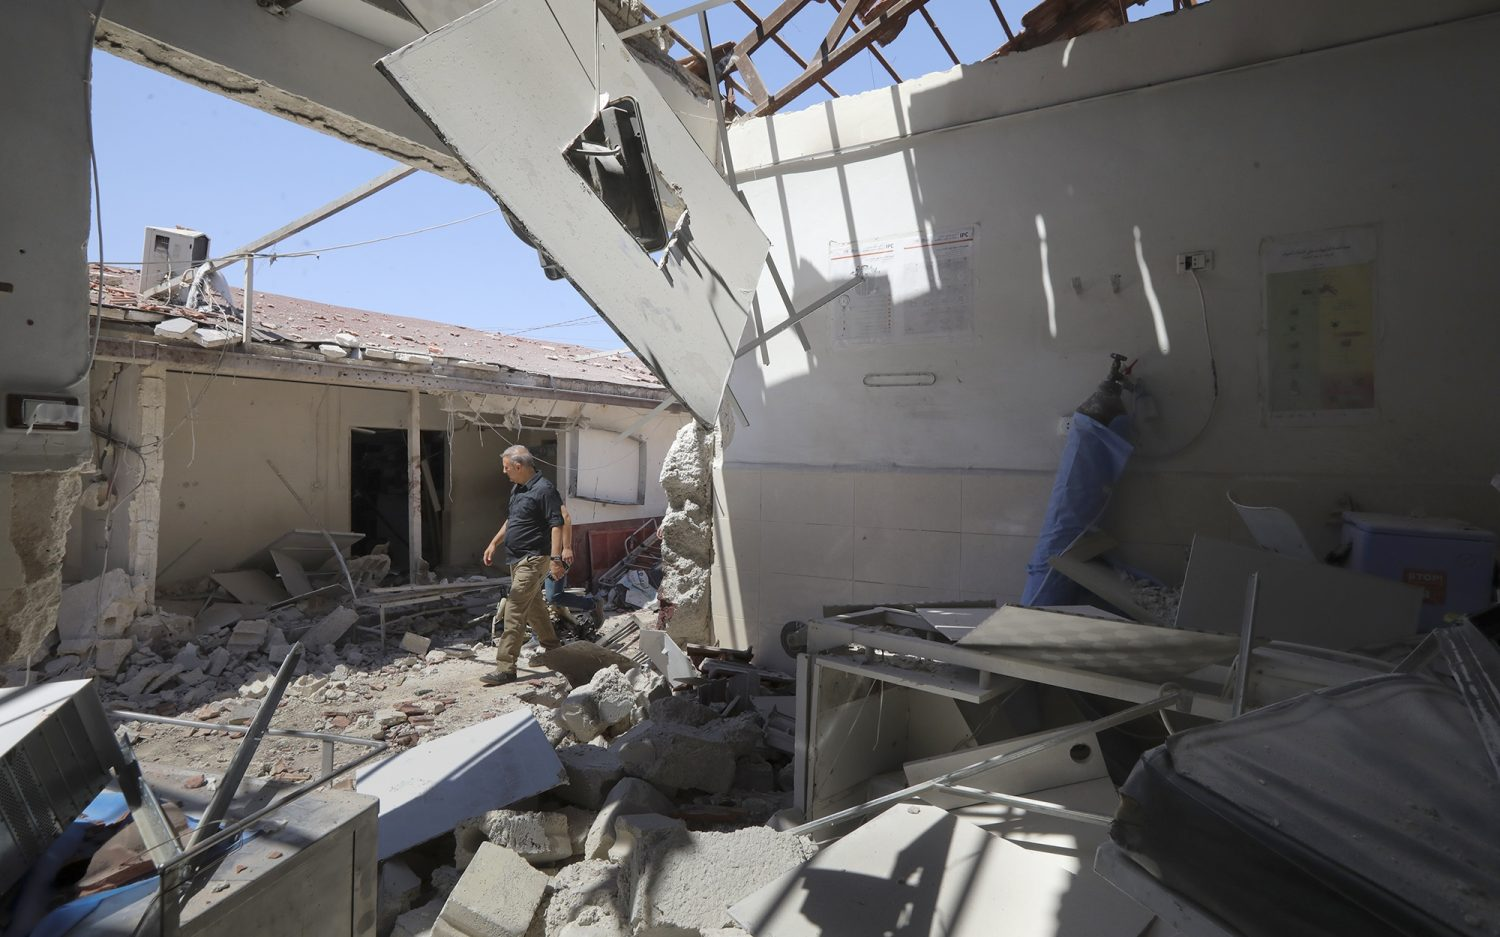 Syria needs aid for multiple crises